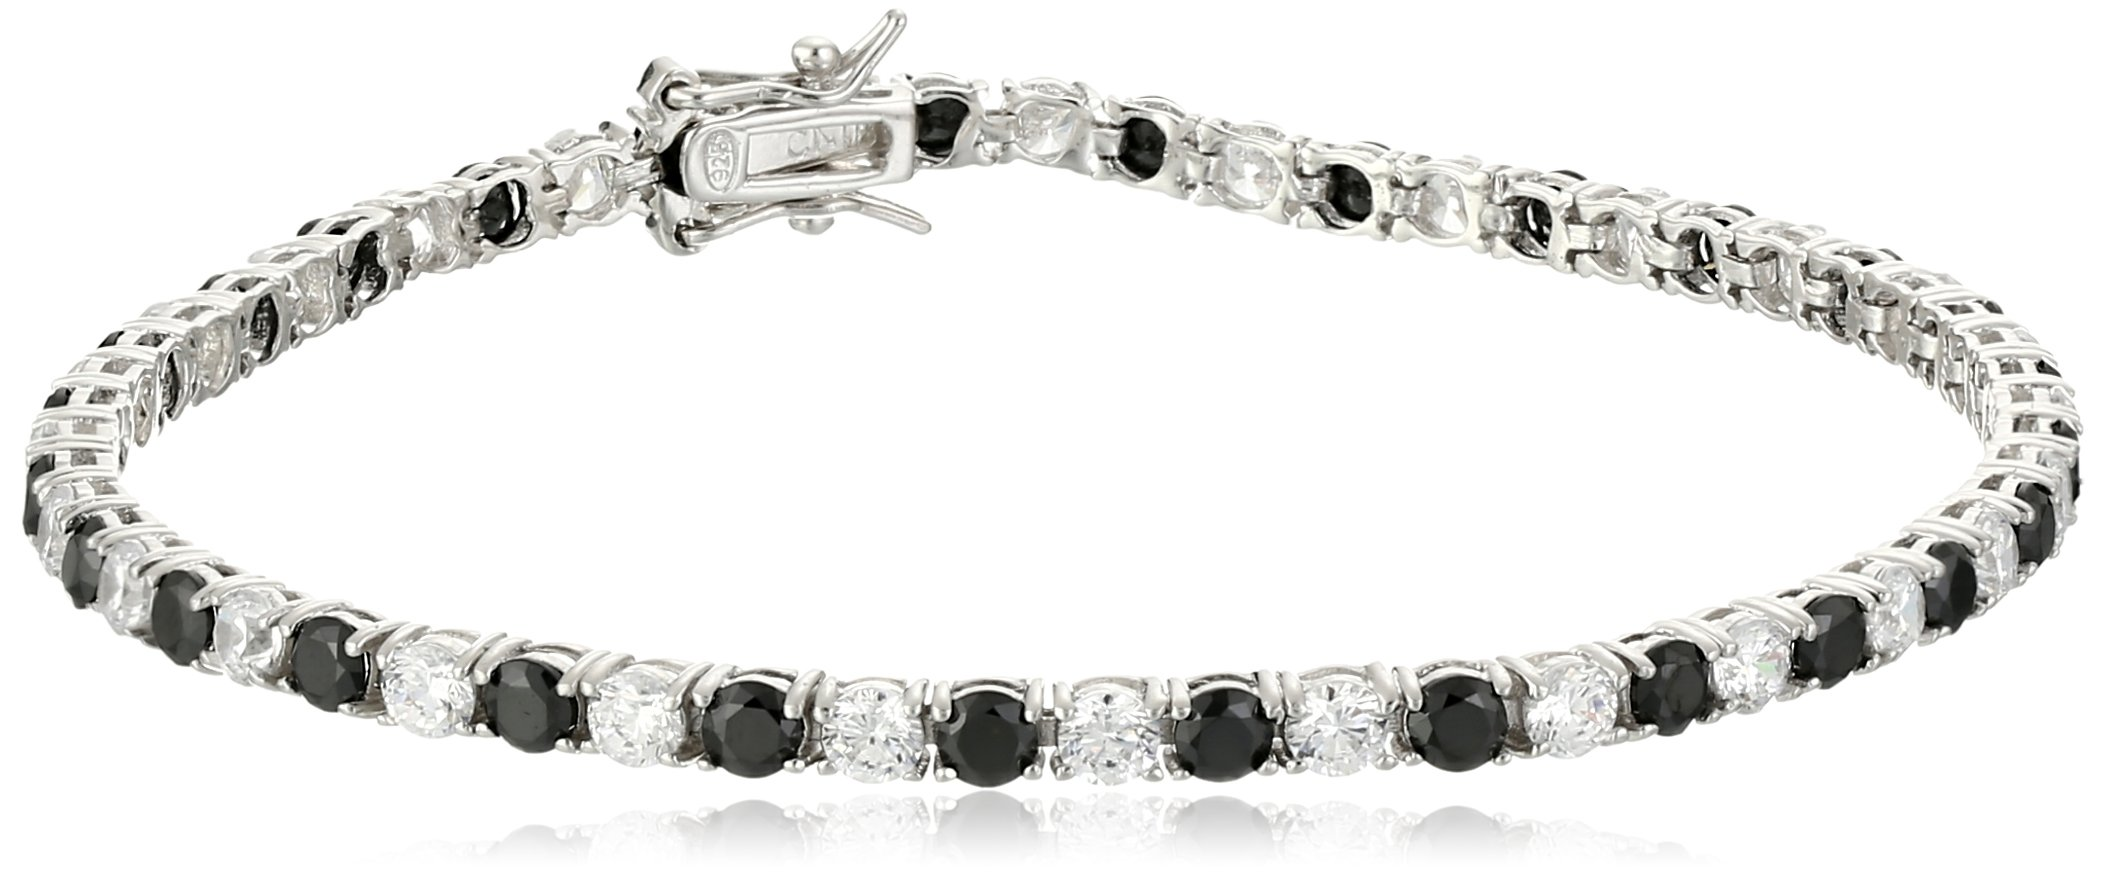 Sterling Silver Alternating Black and White Prong Set AAA Cubic Zirconia Tennis Bracelet, 7.5'' (5.9 cttw)